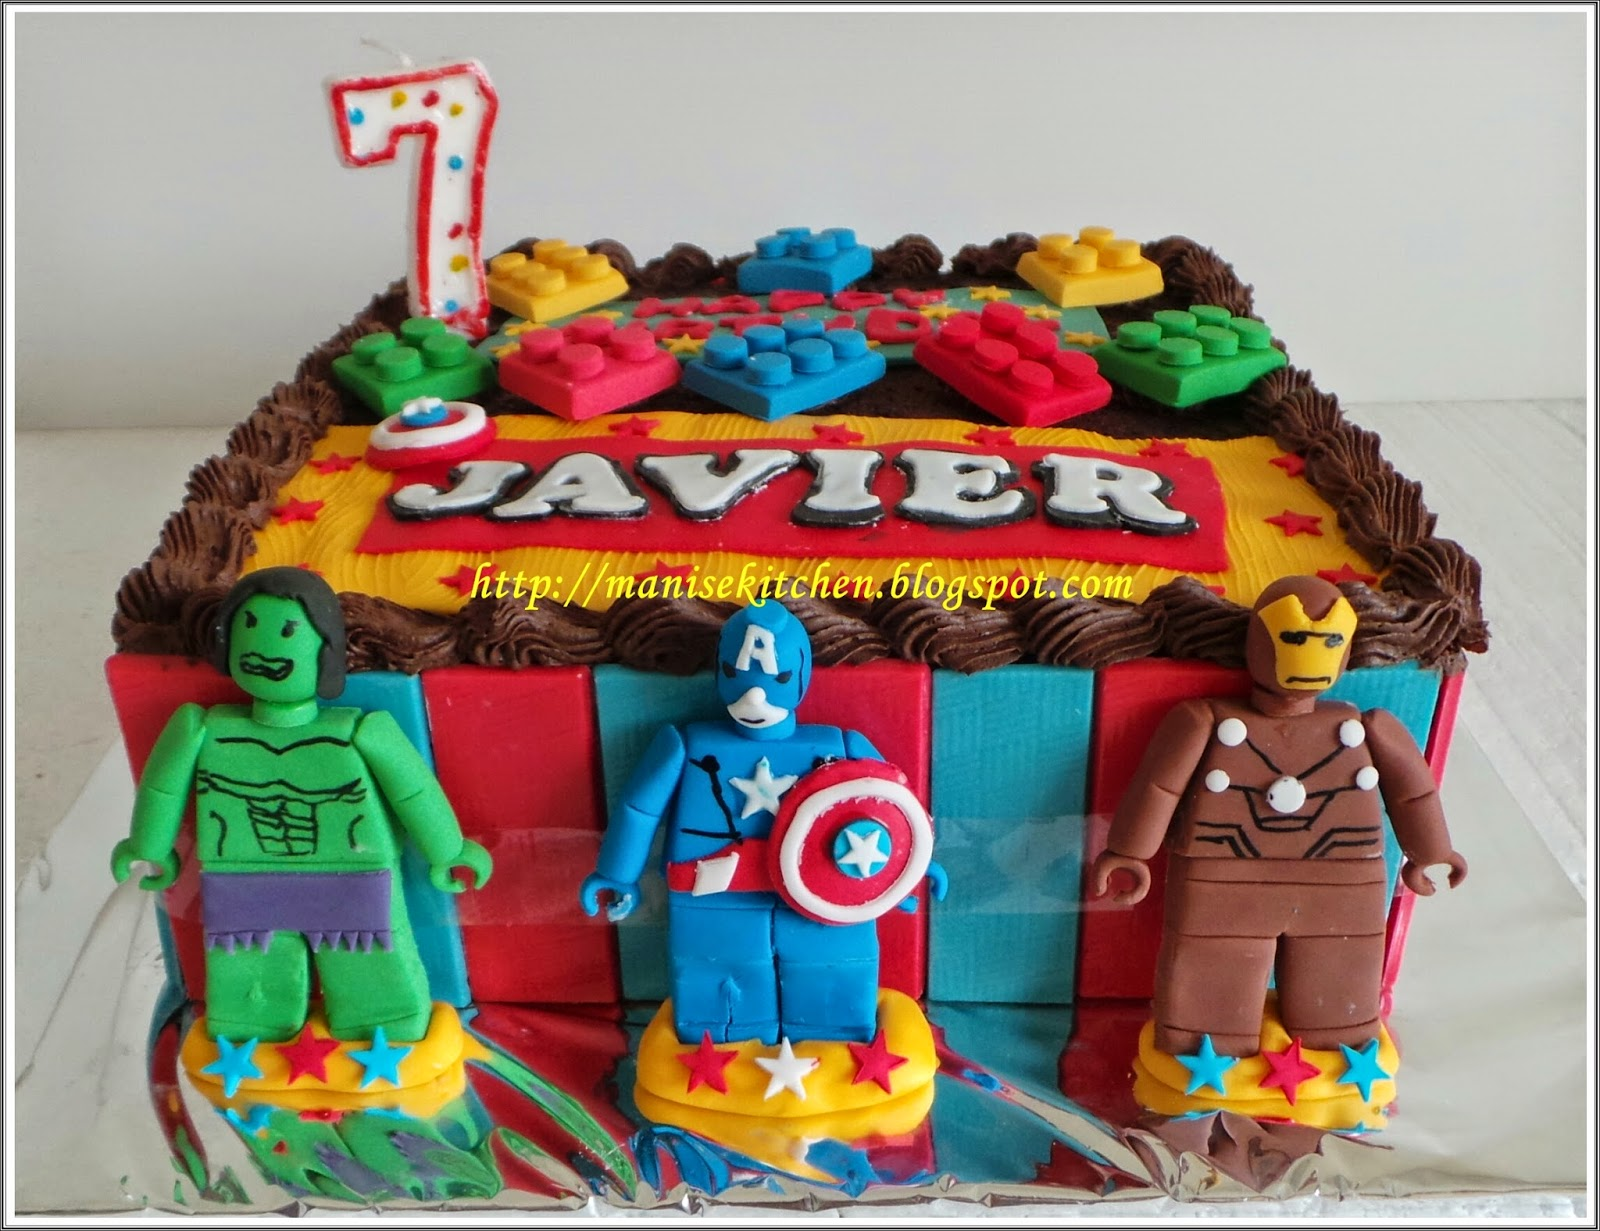 Manise Kitchen Lego Superhero Birthday Cake For Javier